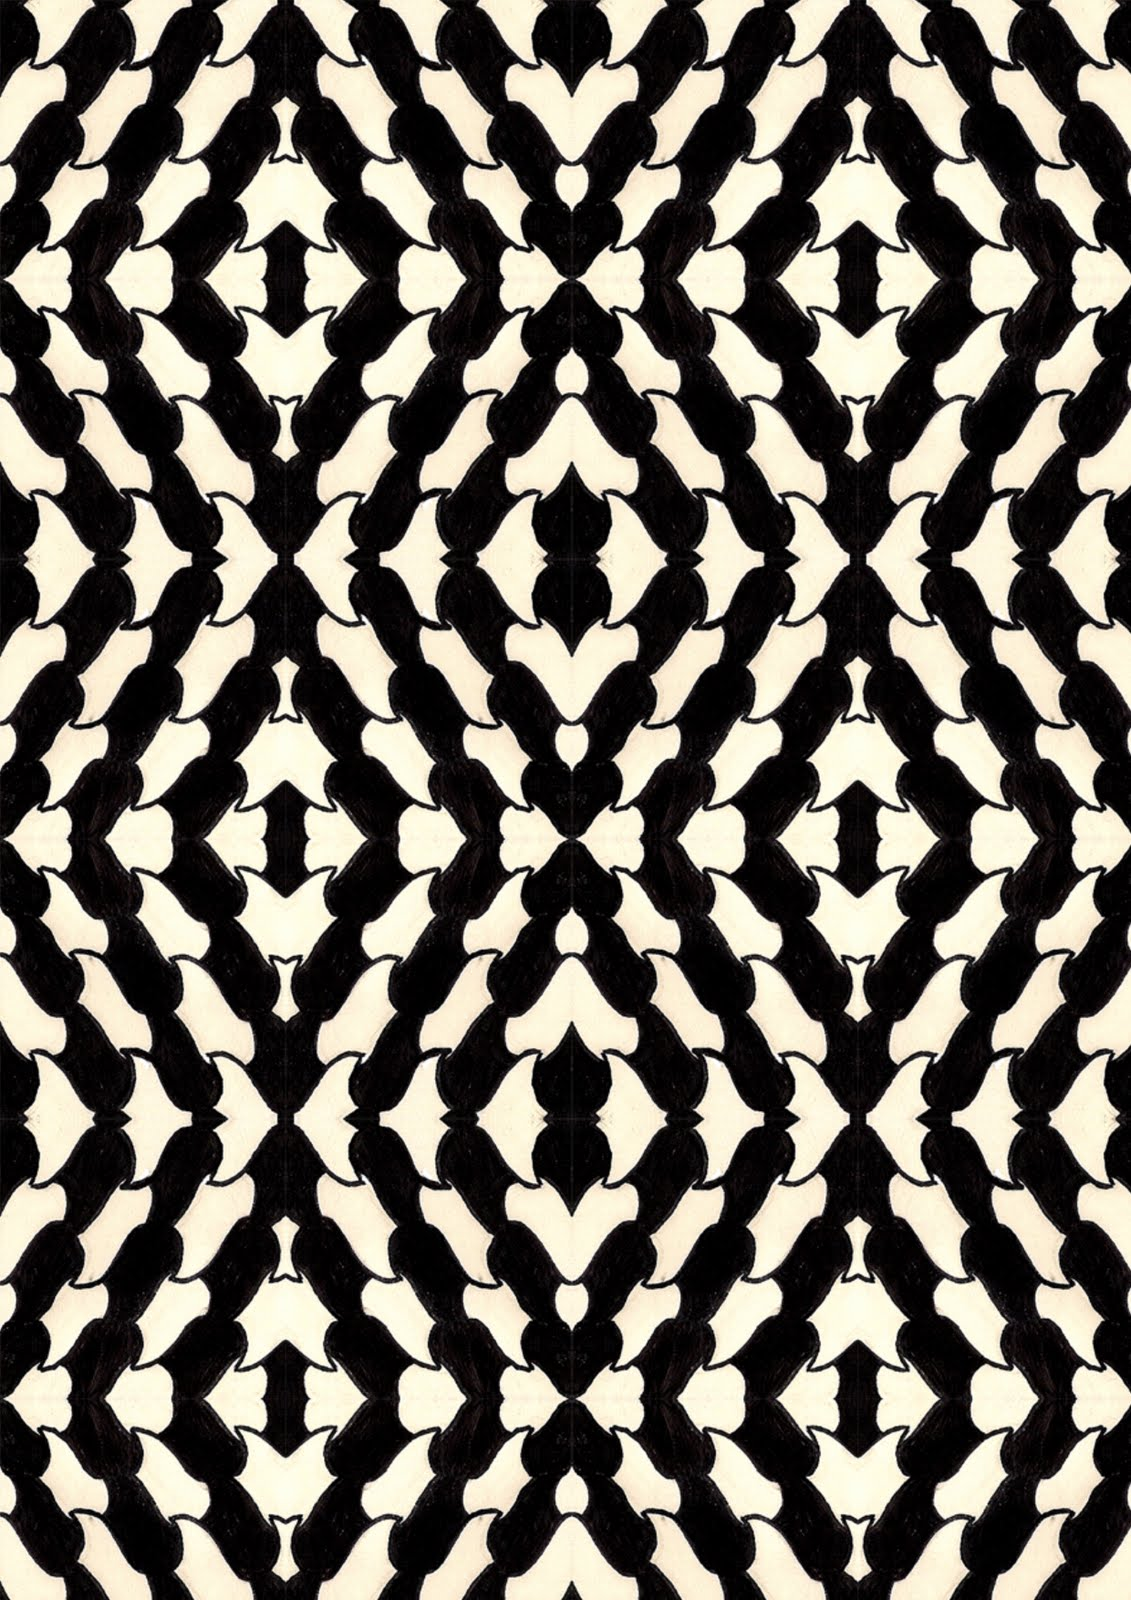 Lucilla Gray Rhythm Repetition Pattern